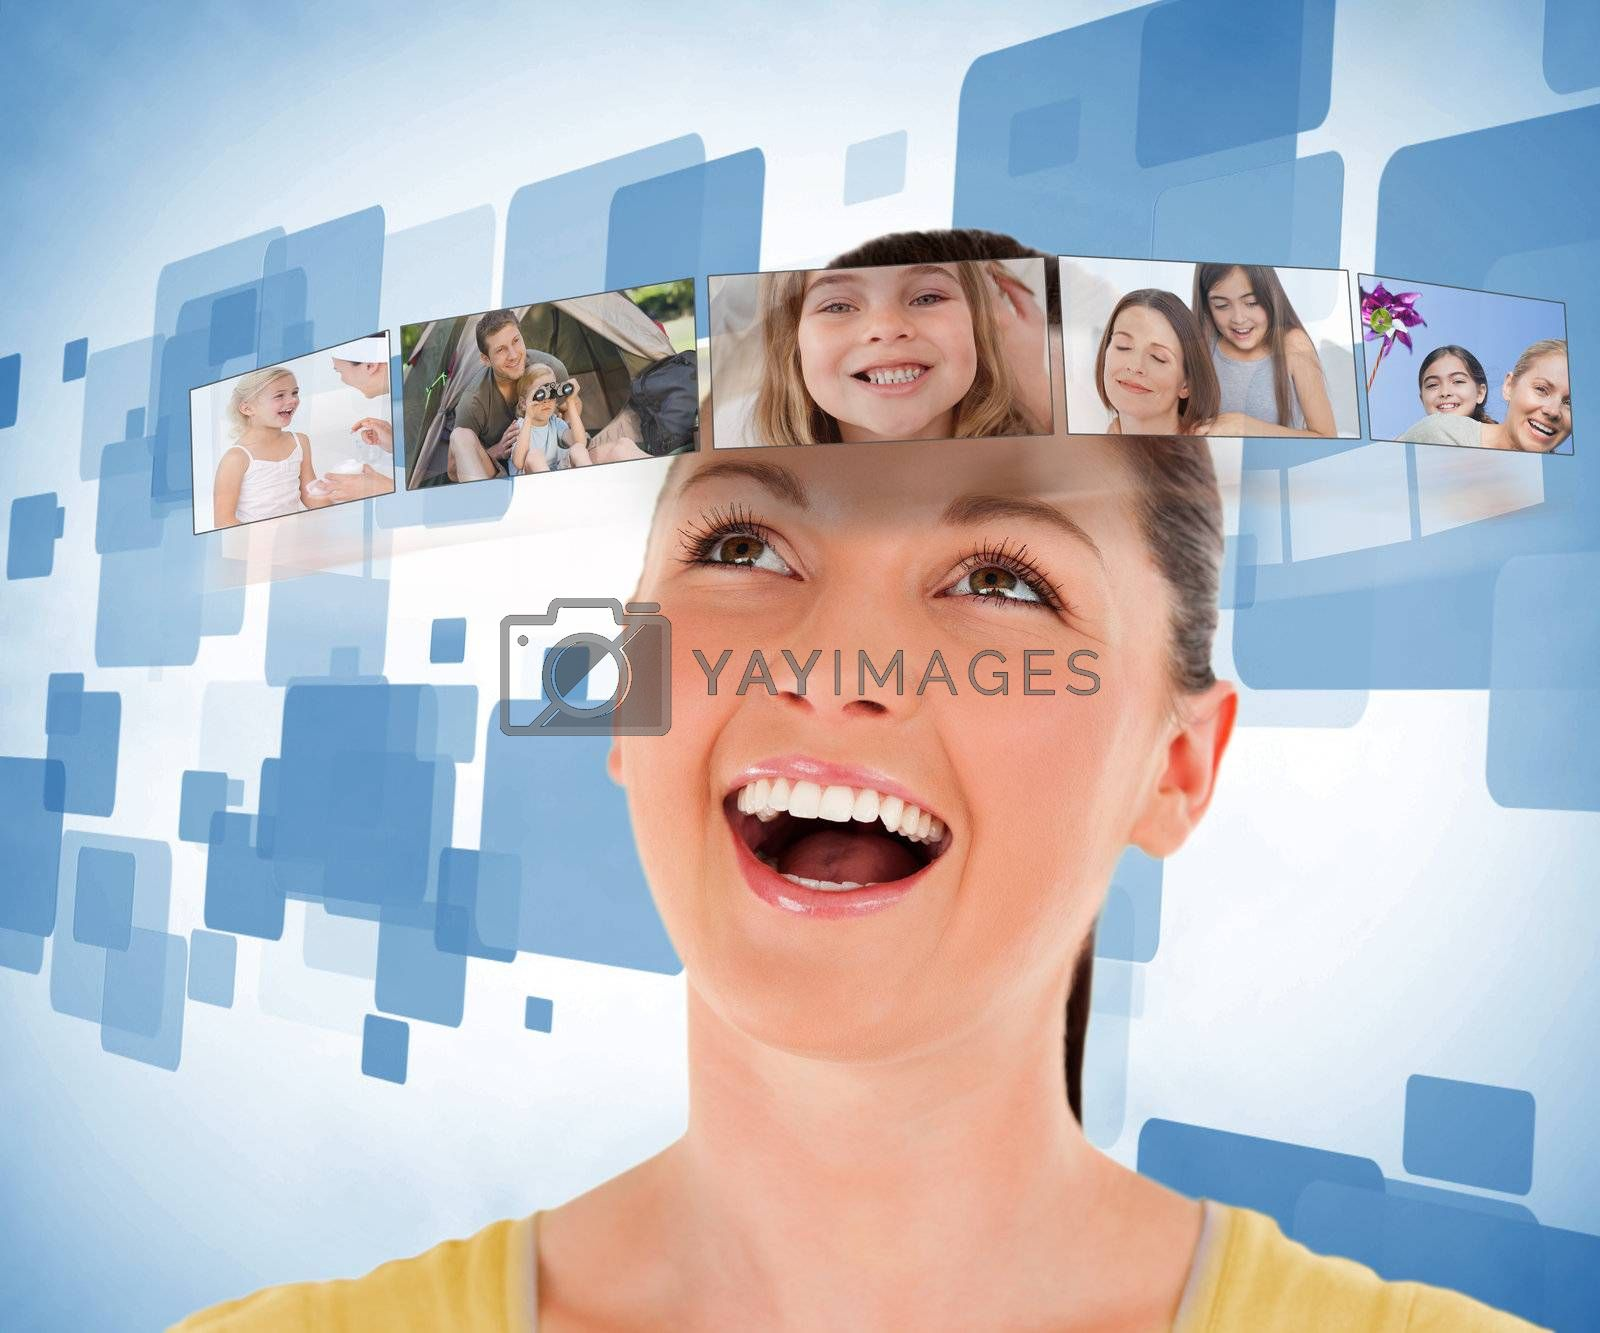 Smiling woman looking at picture bar on blue background